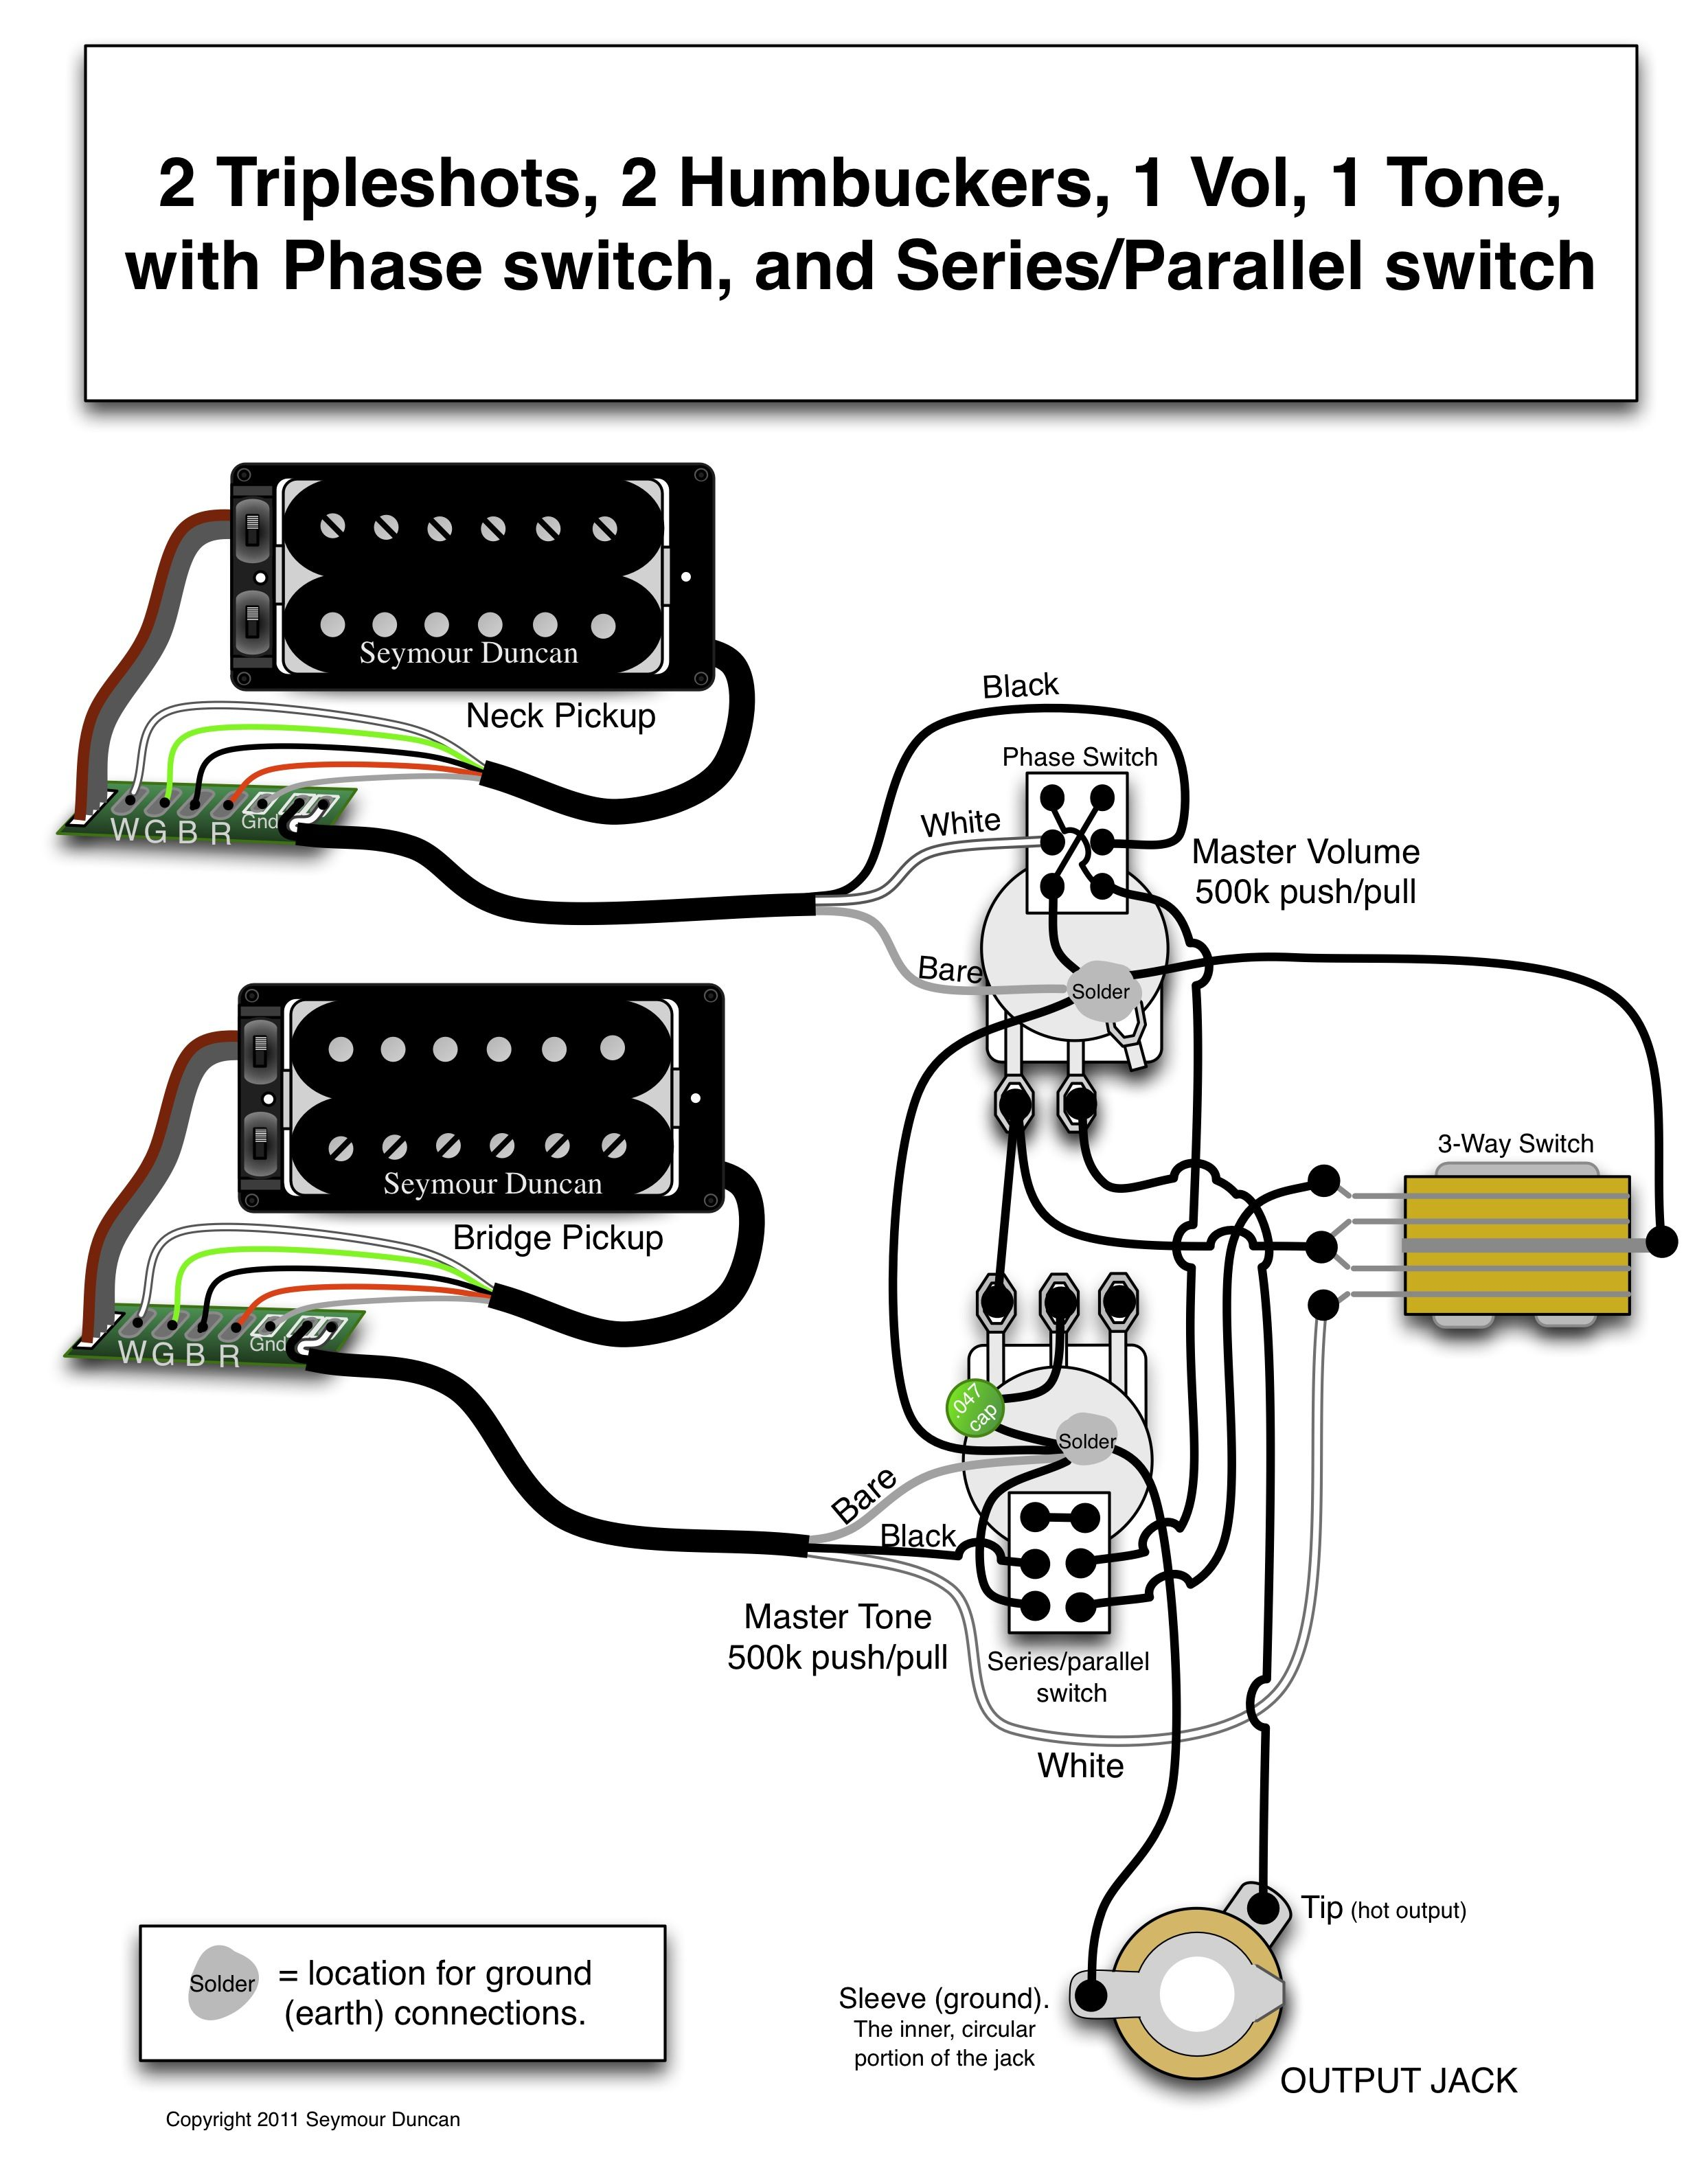 two humbucking pickups wiring diagram seymour duncan wiring diagram - 2 triple shots, 2 ... emg pickups wiring diagram #9